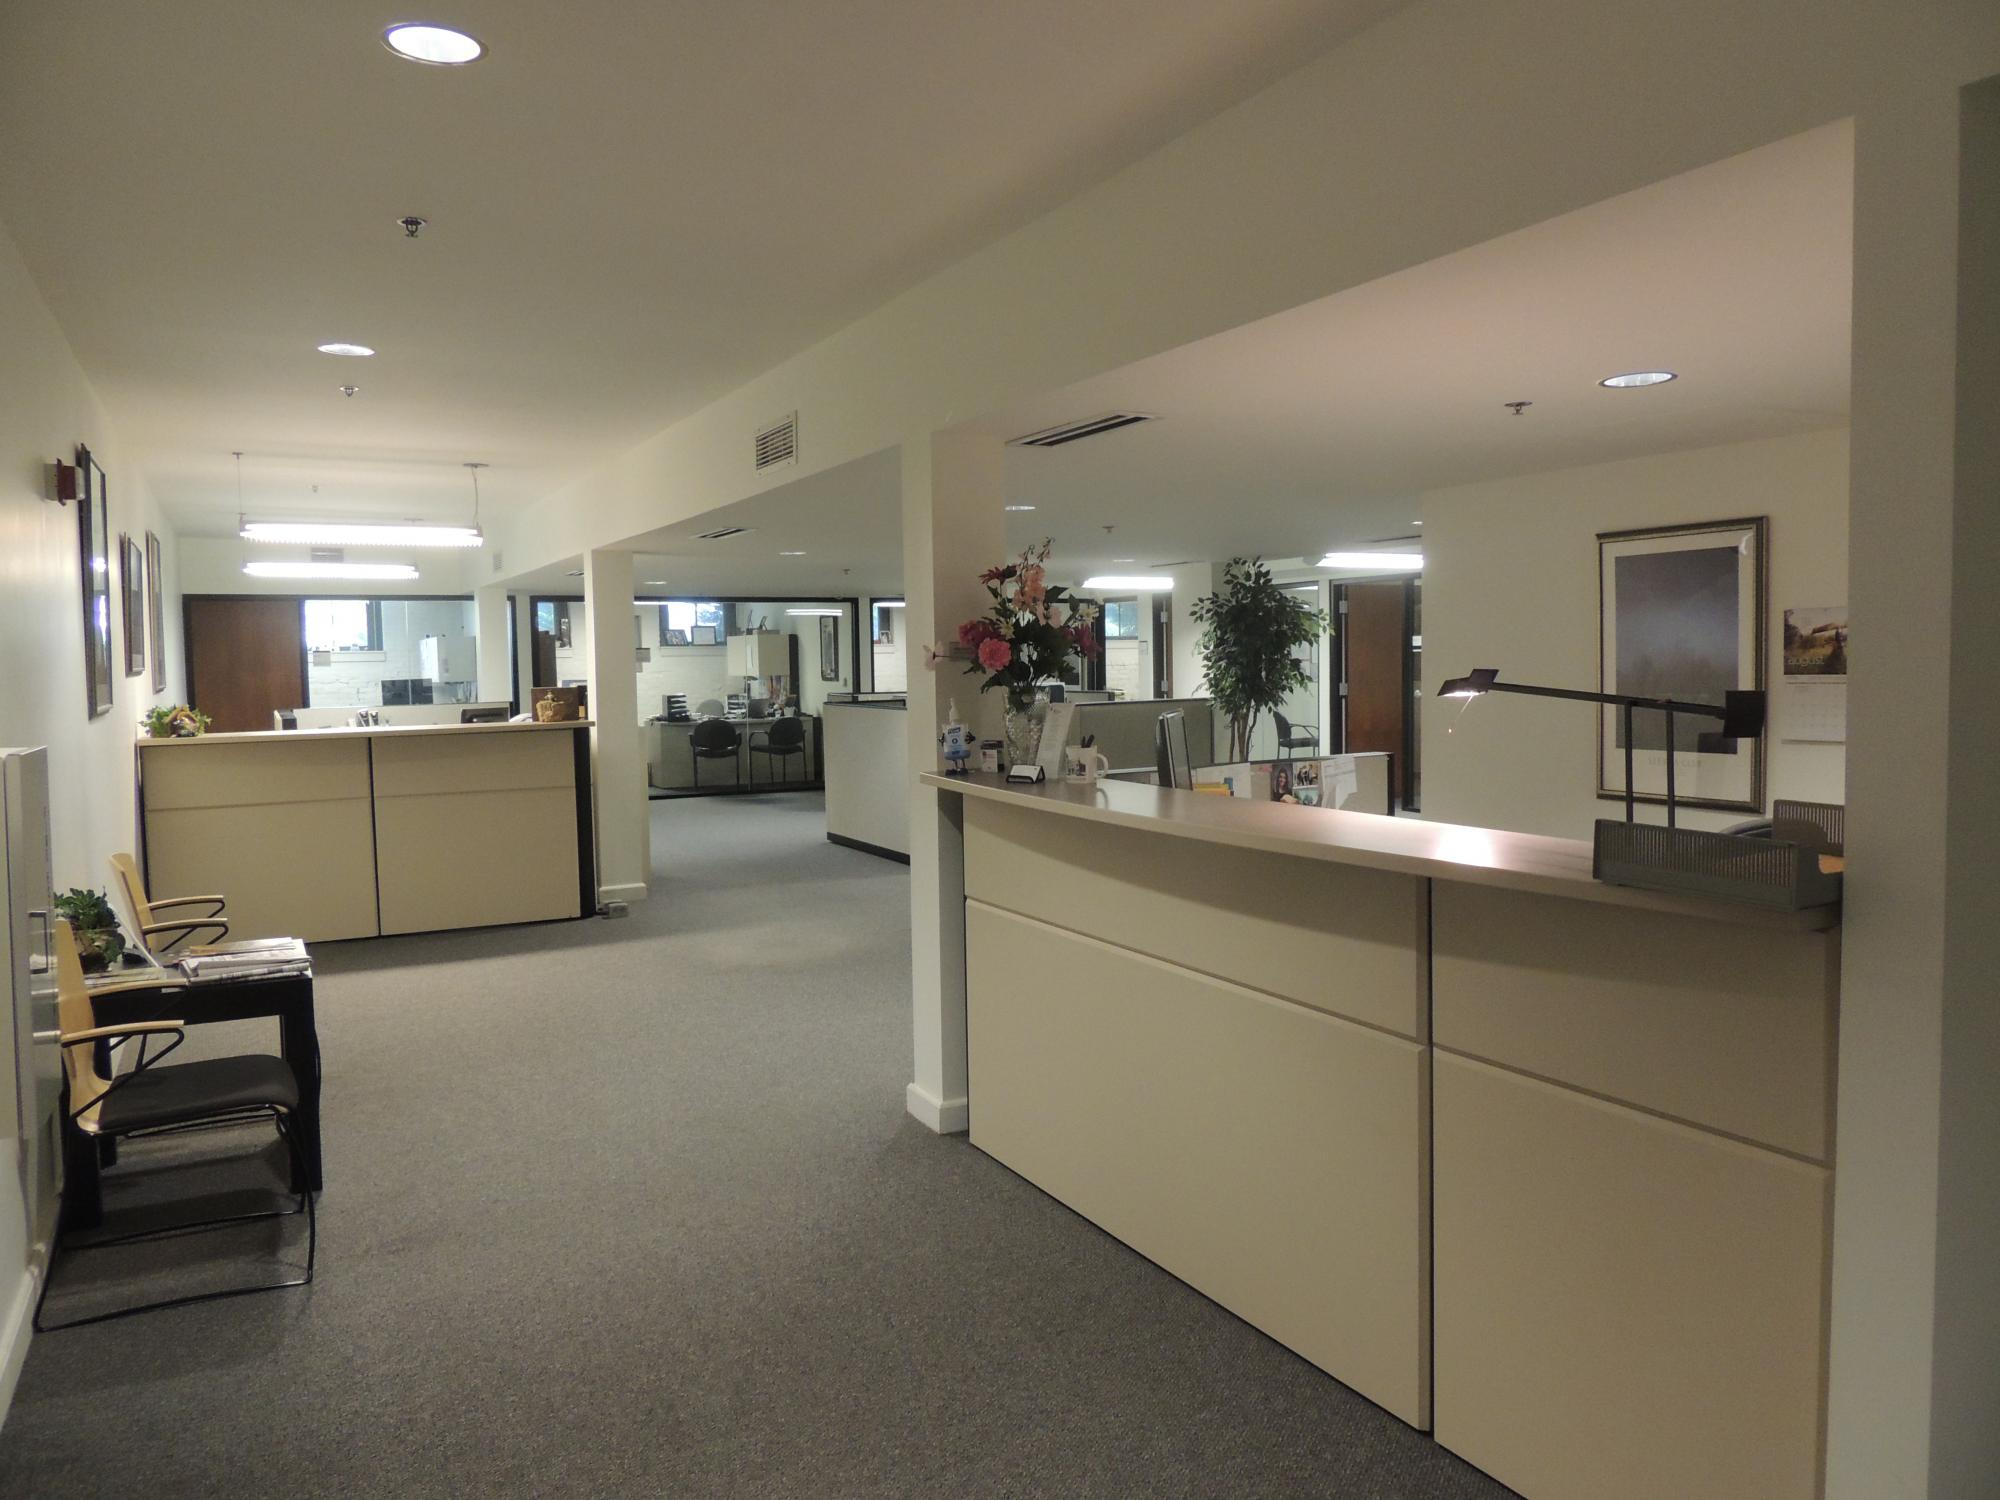 Human Resources reception area